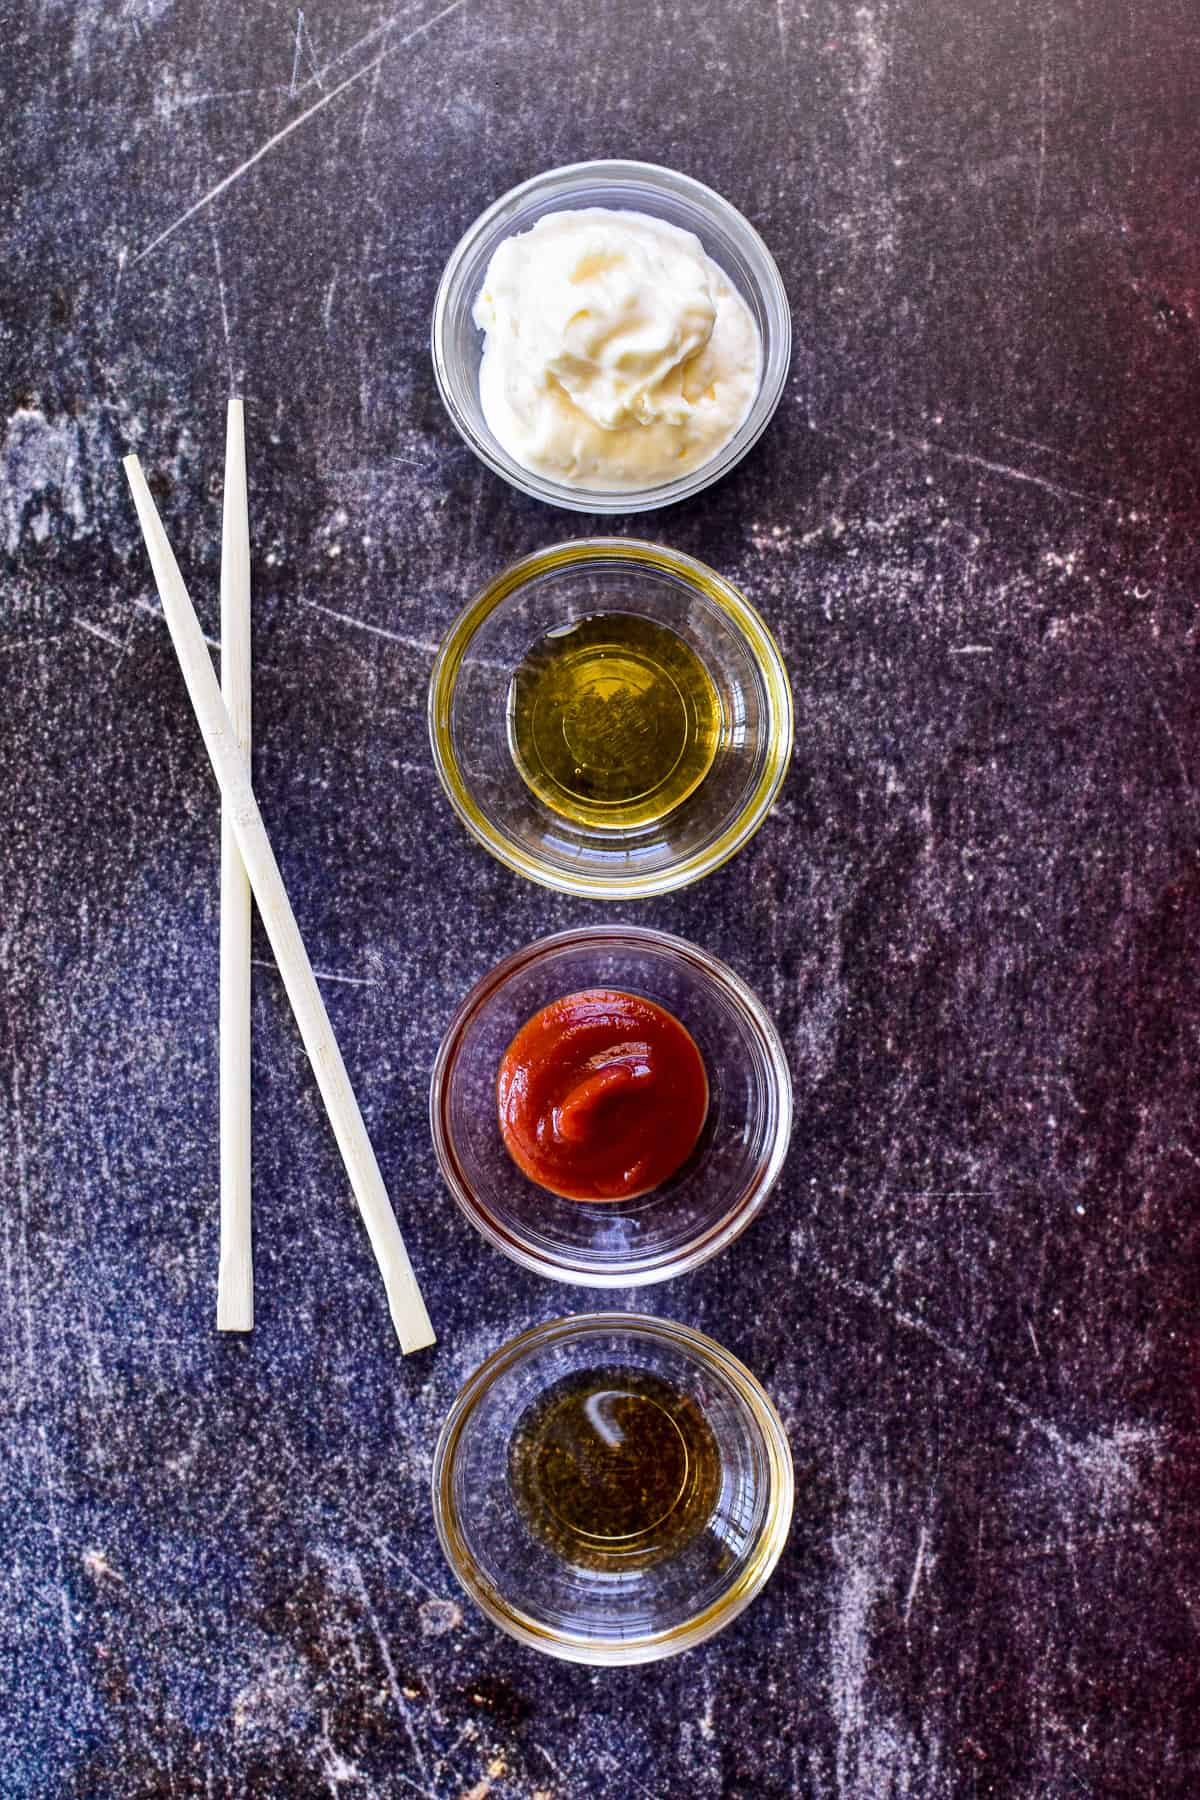 Spicy Mayo ingredients in small glass bowls